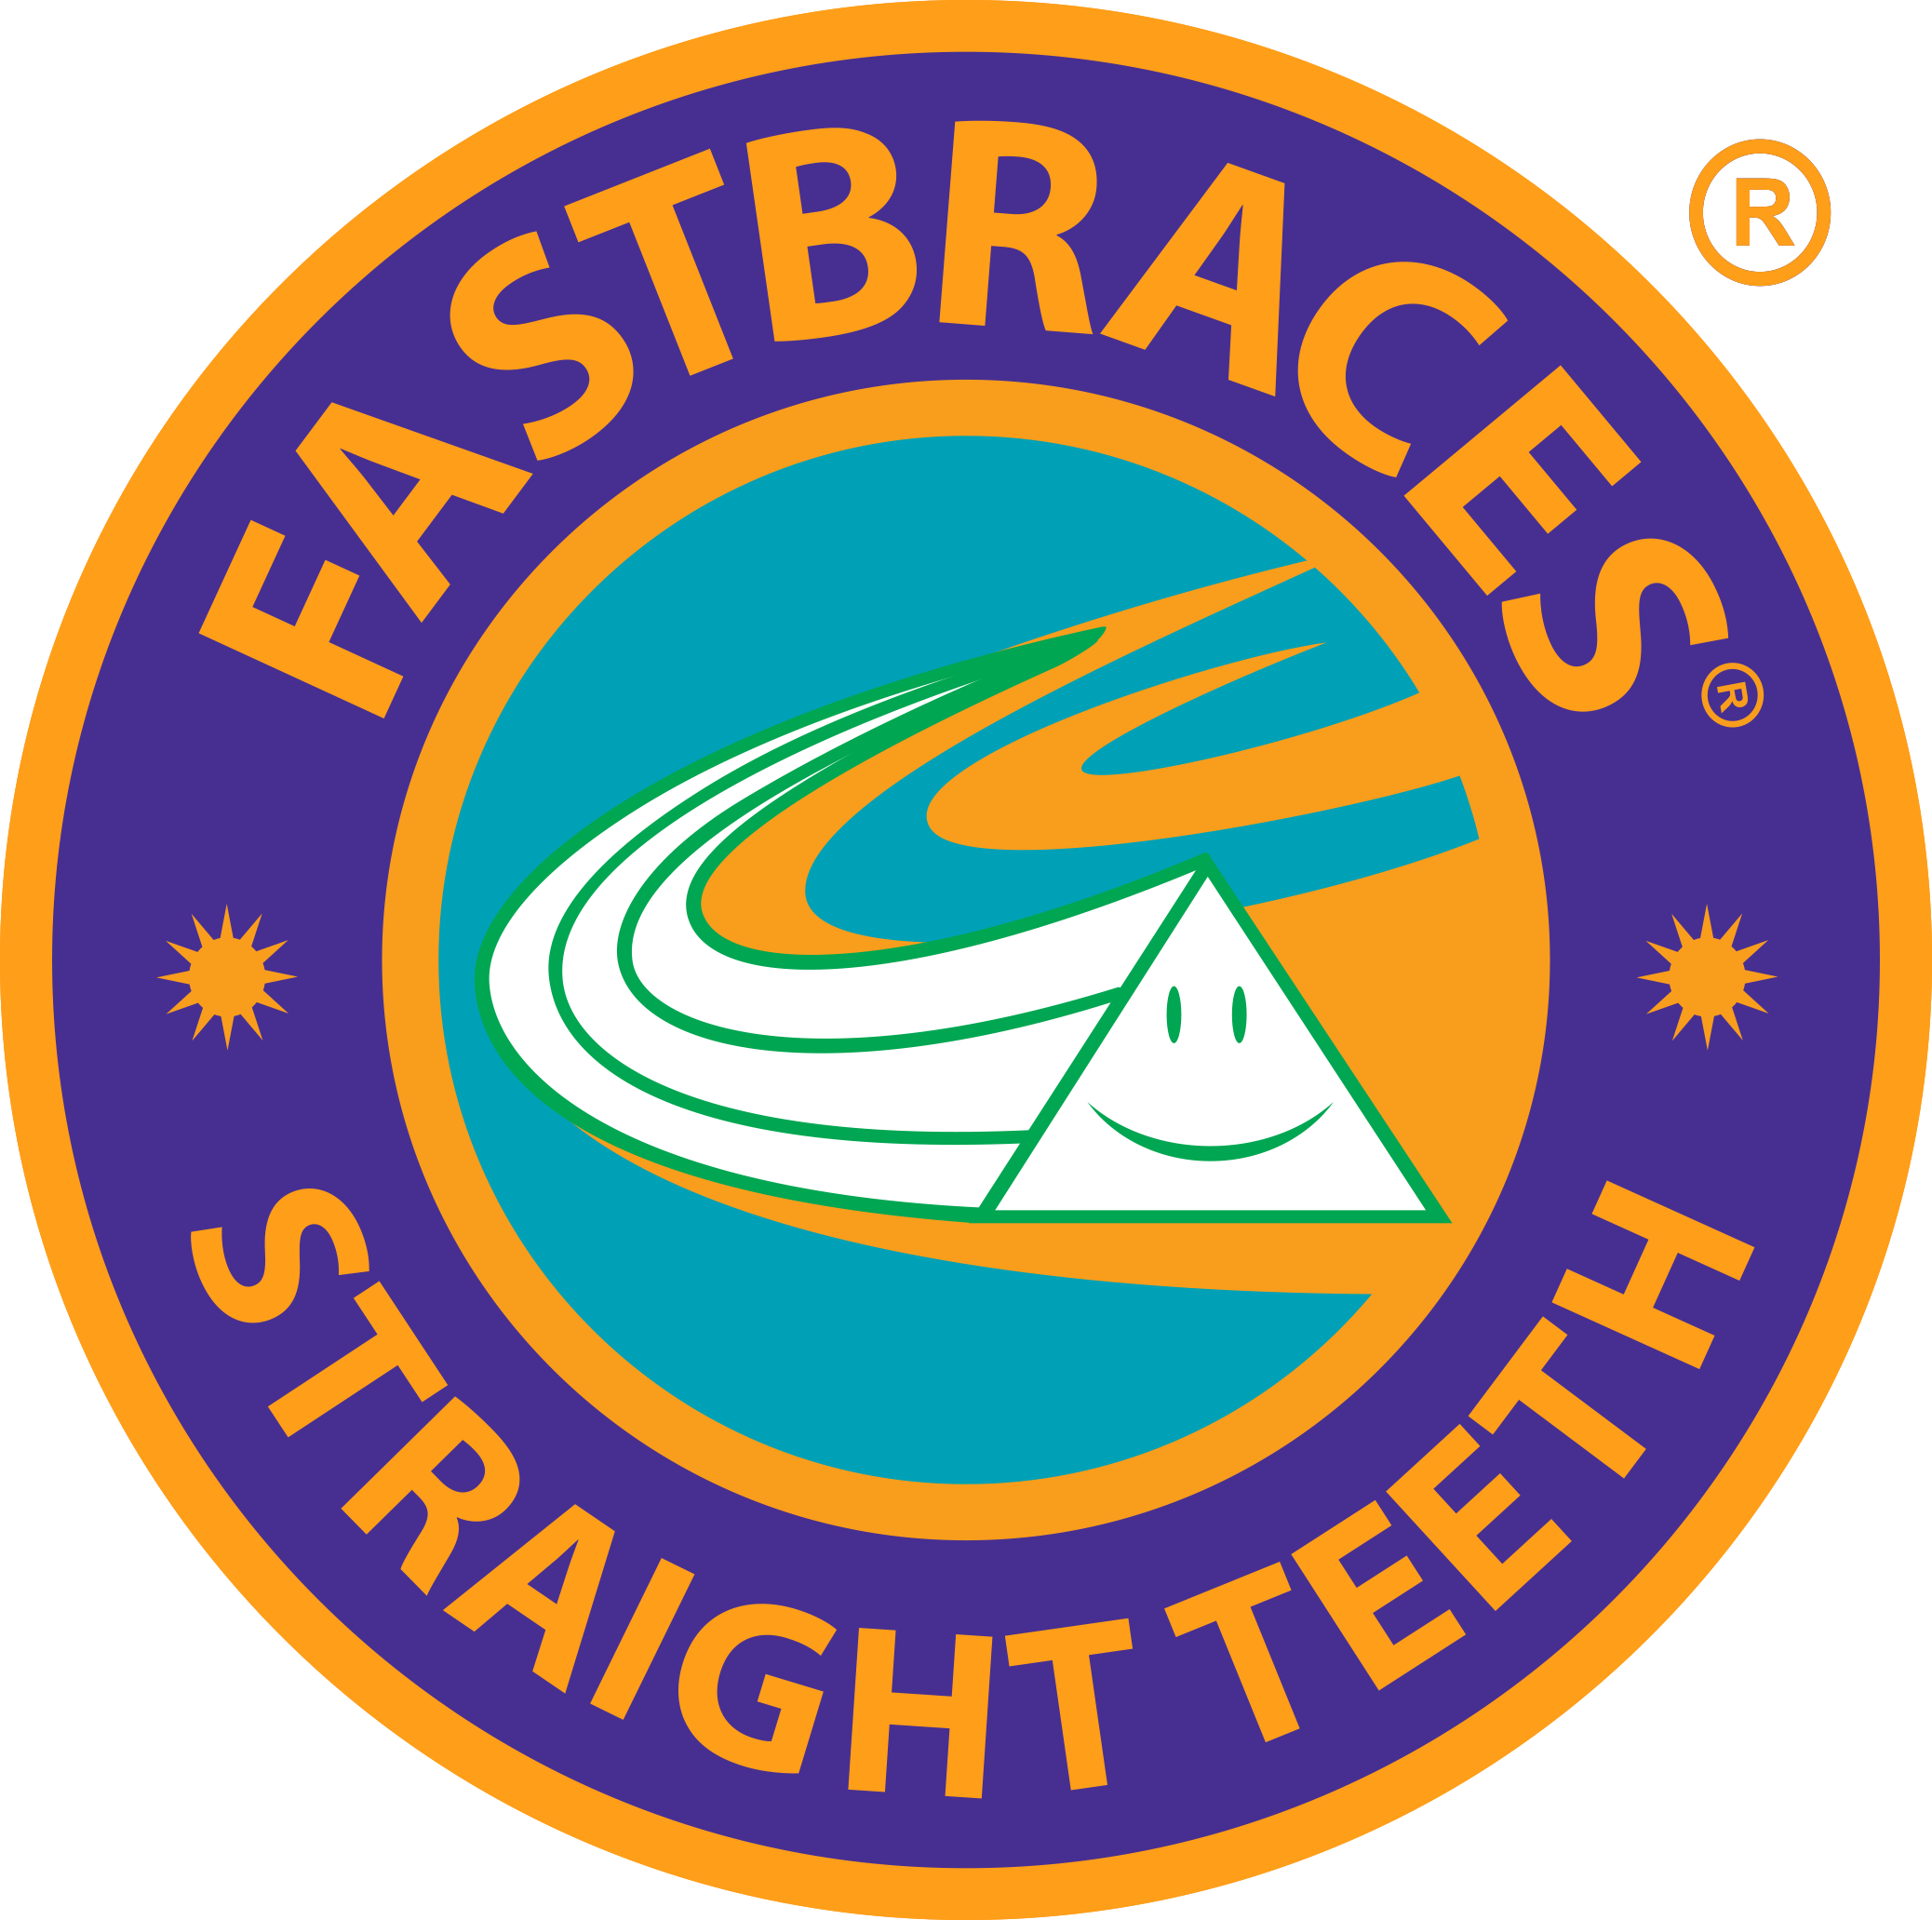 fastbraces_logo_orange_r